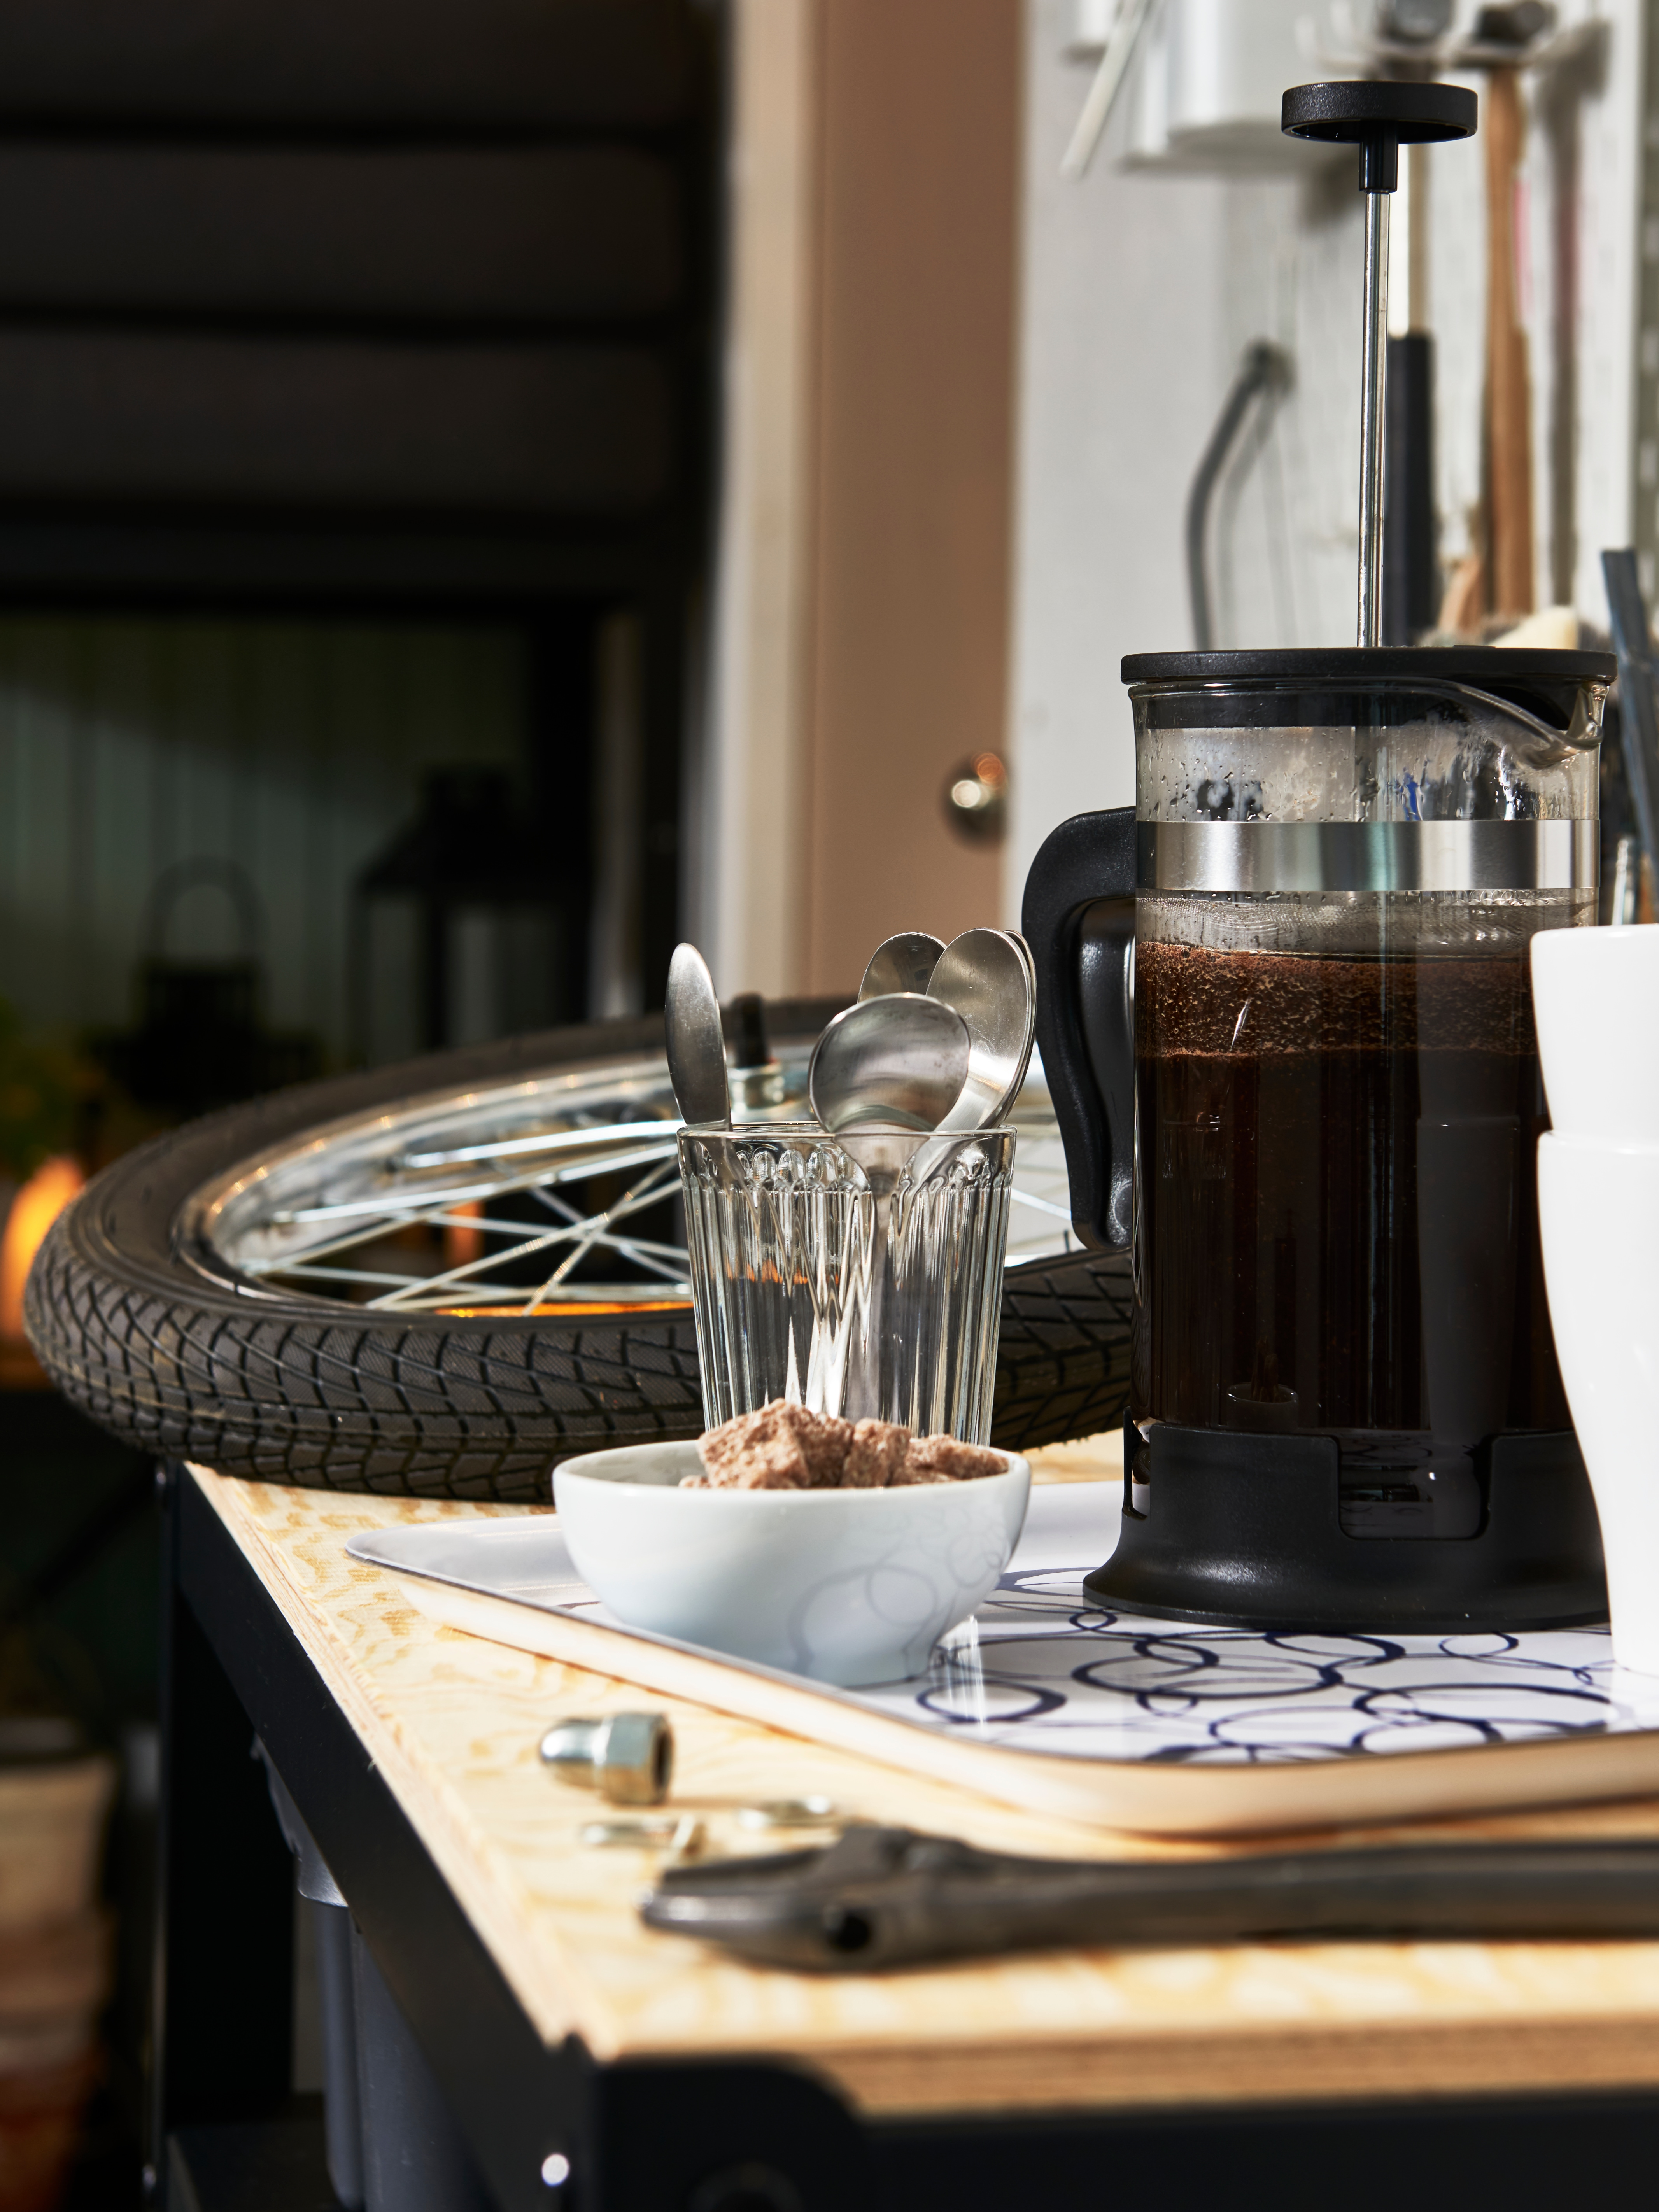 A white MEDLEM tray with a blue circular pattern holds a coffee maker and two mugs by tools and a tyre on a garage worktop.